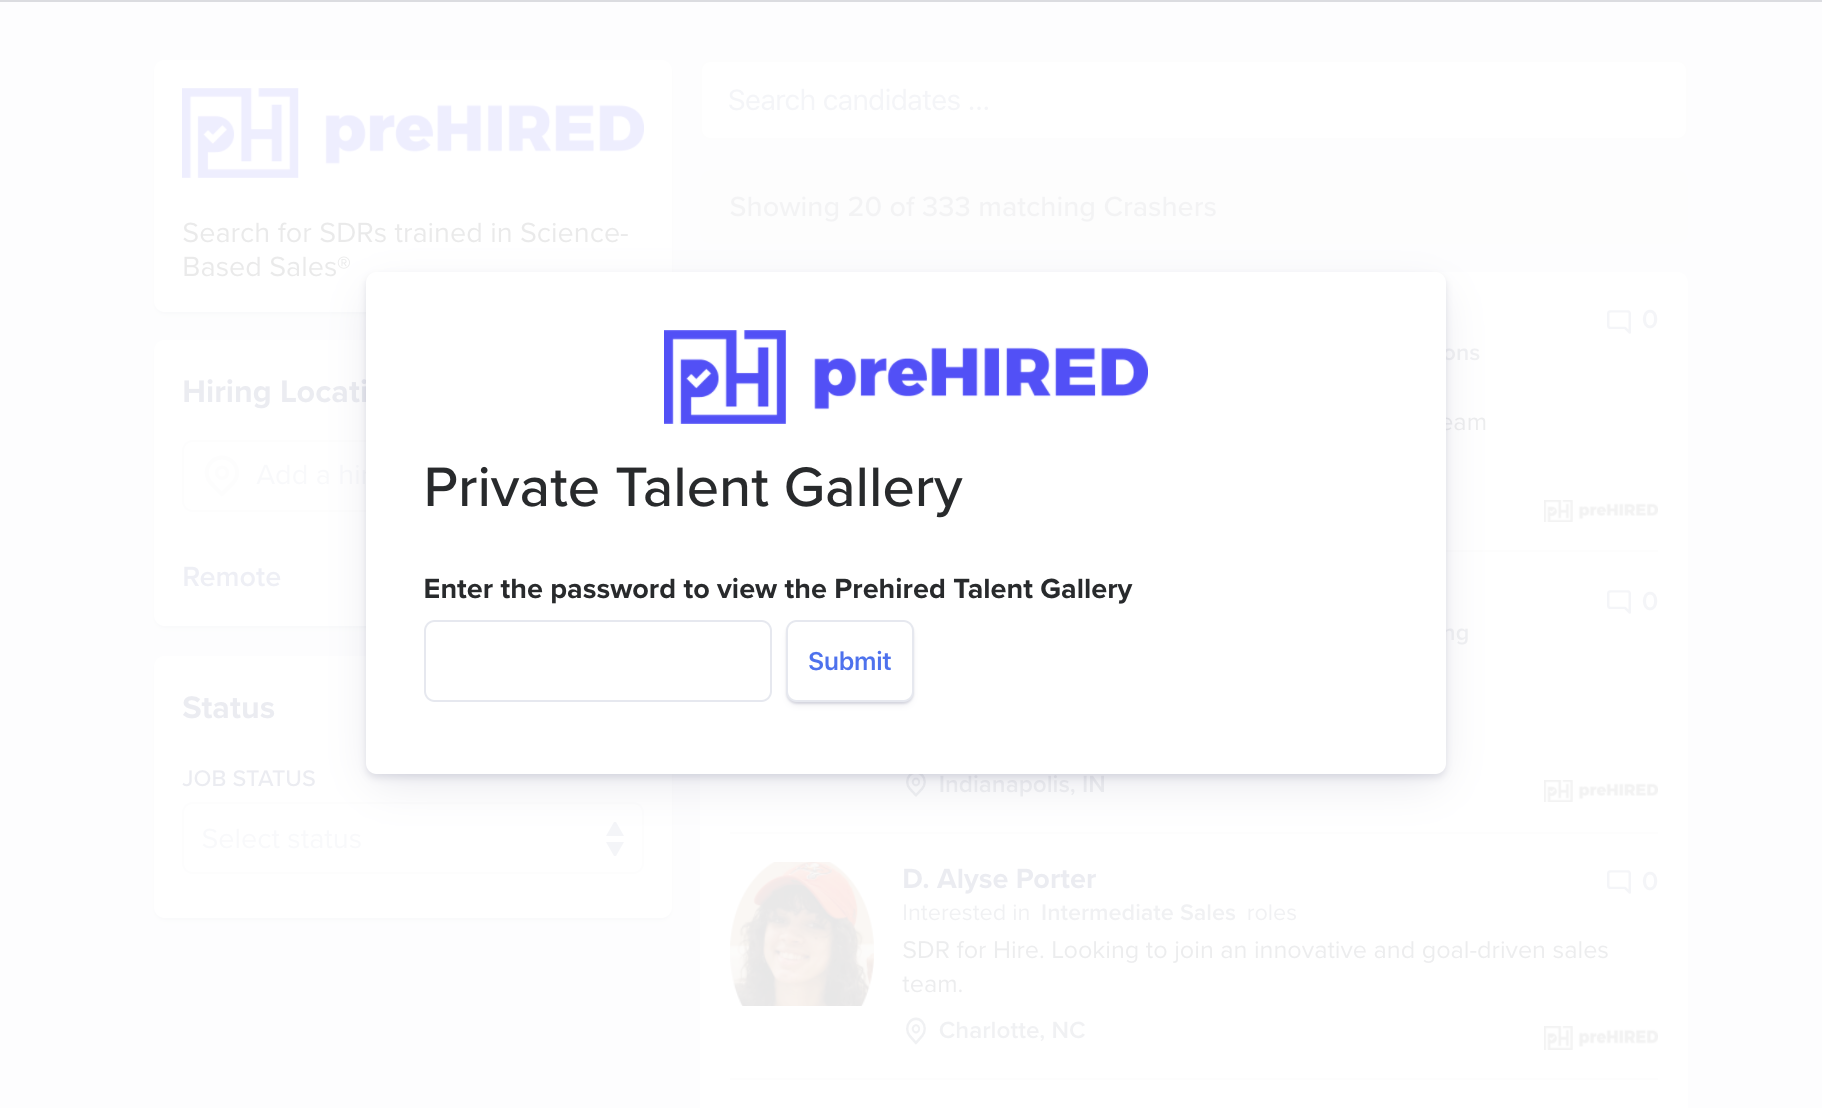 preHIRED student job seeker private gallery